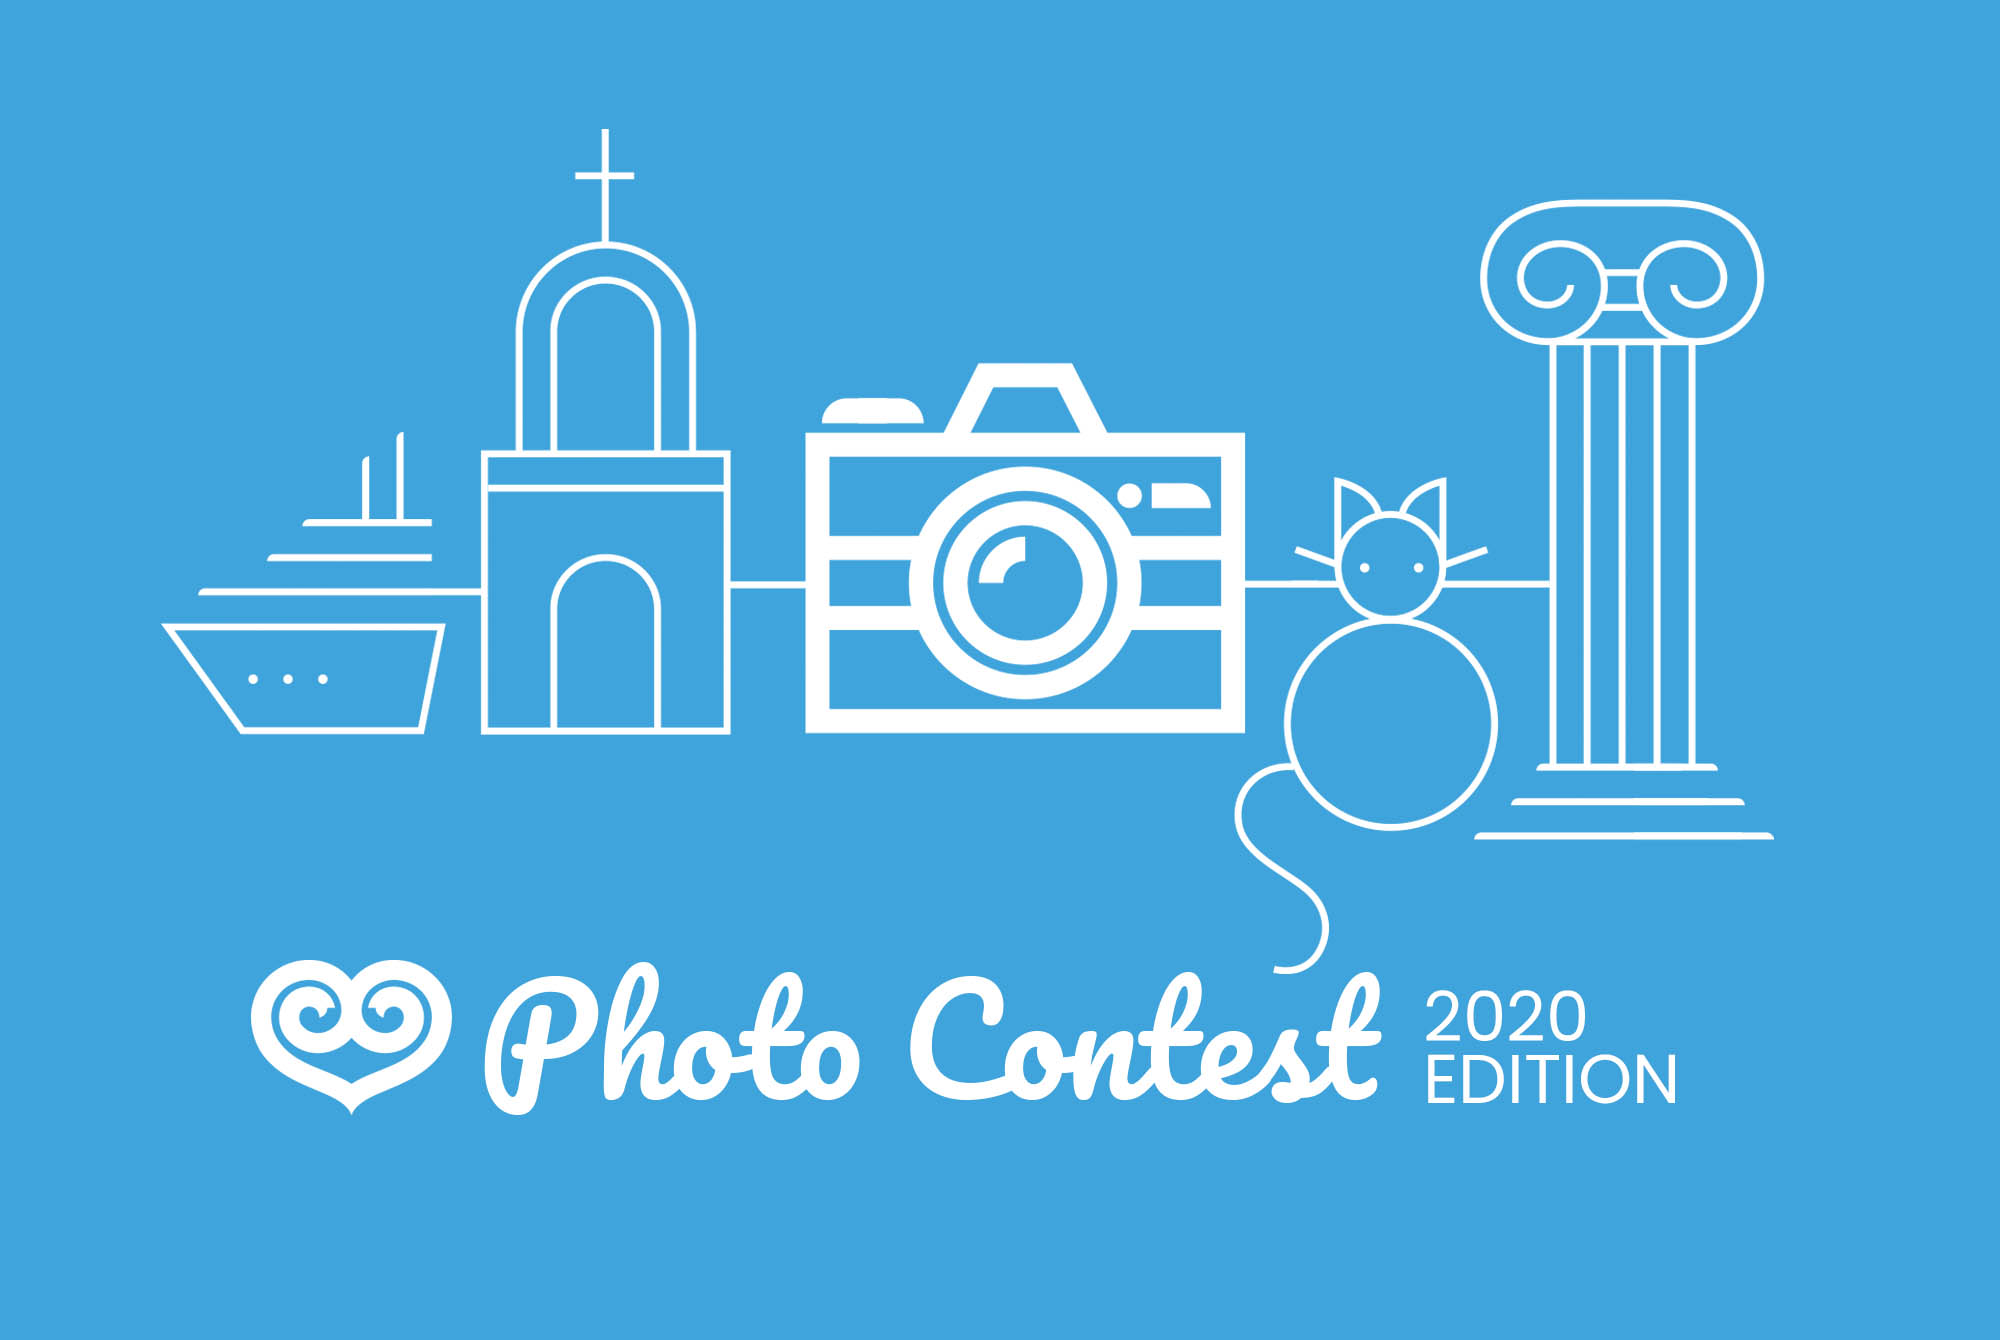 Greeka photo contest